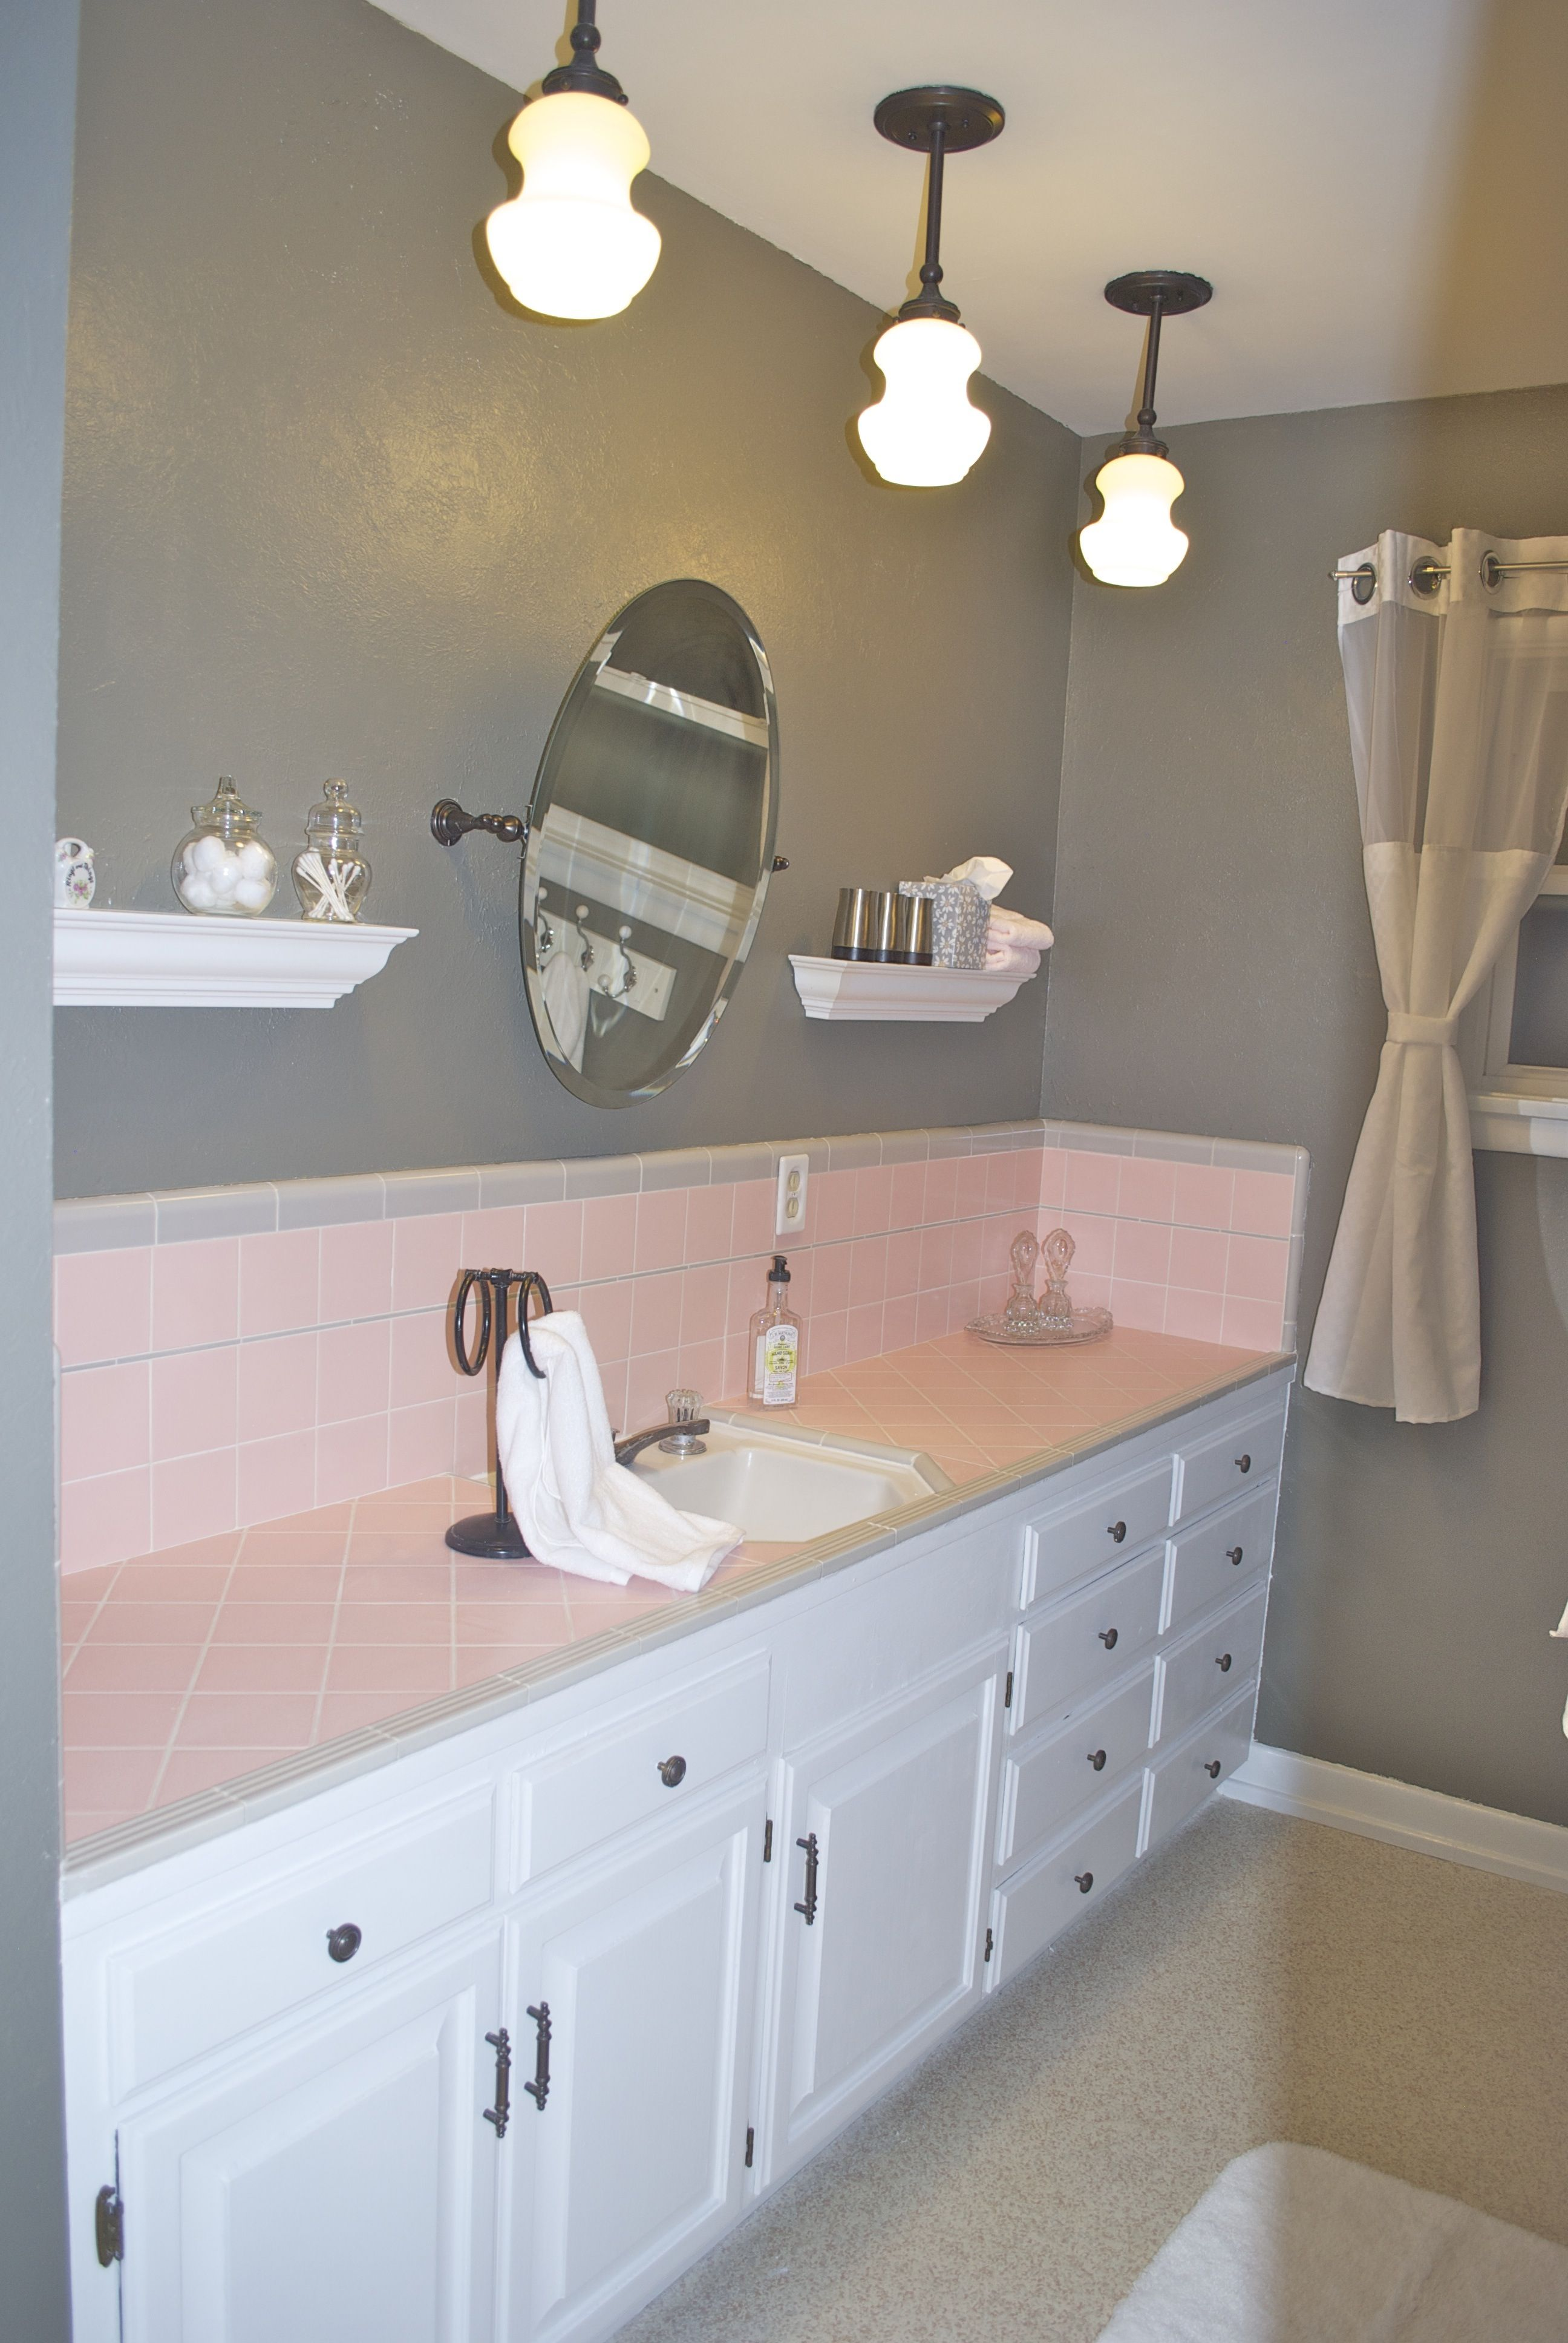 How to embrace the pink tile in the bathroom : )   Home \u0026 Garden ...